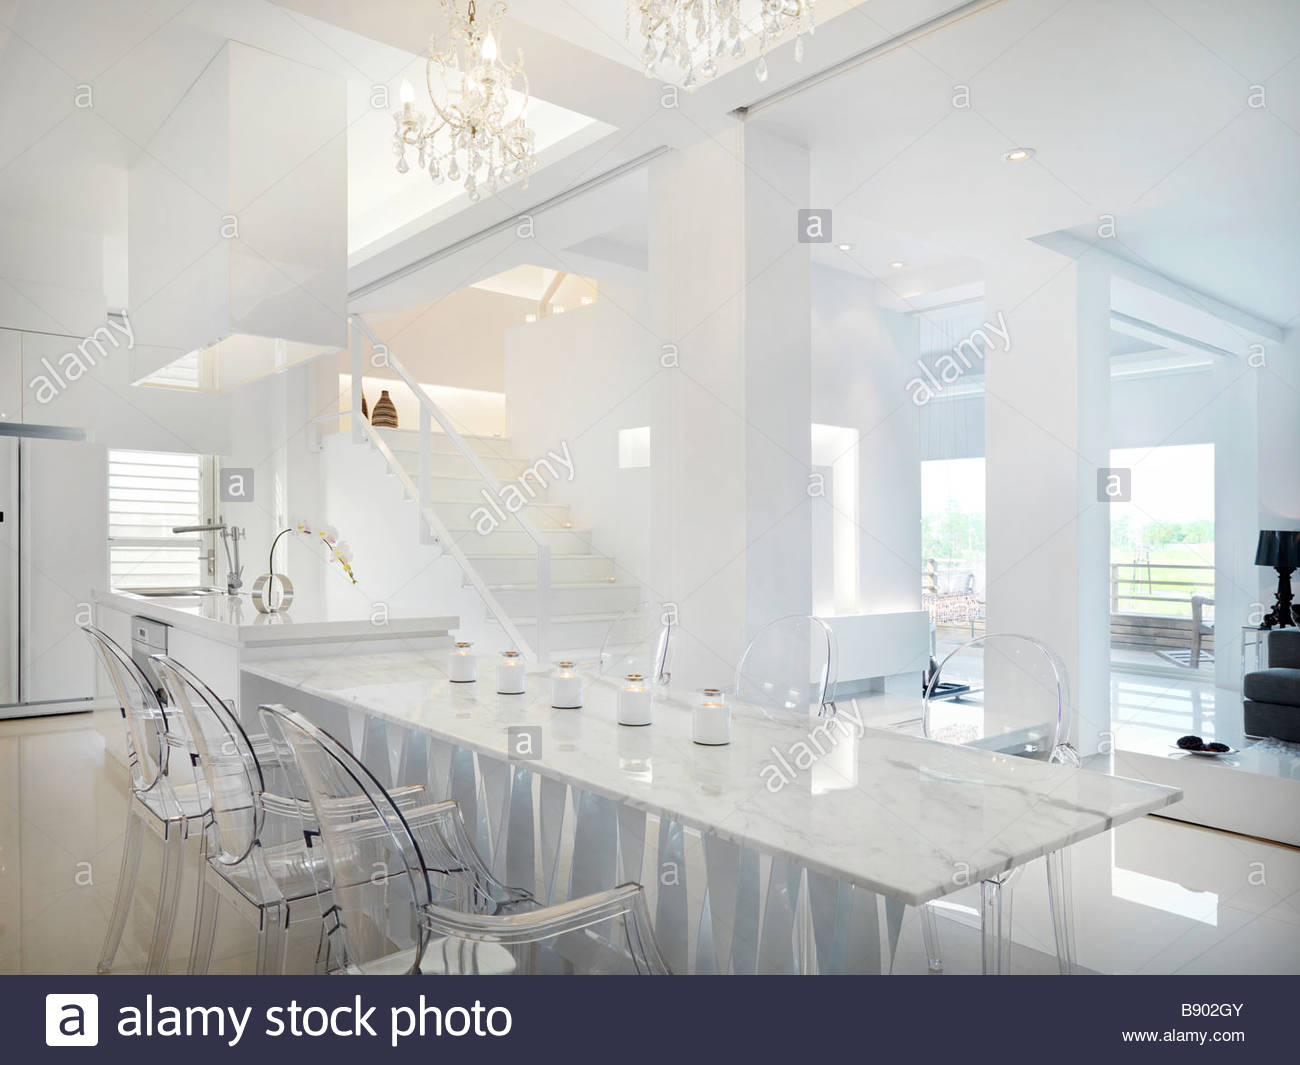 Marble Dining Table With Clear Plastic Chairs Part 54